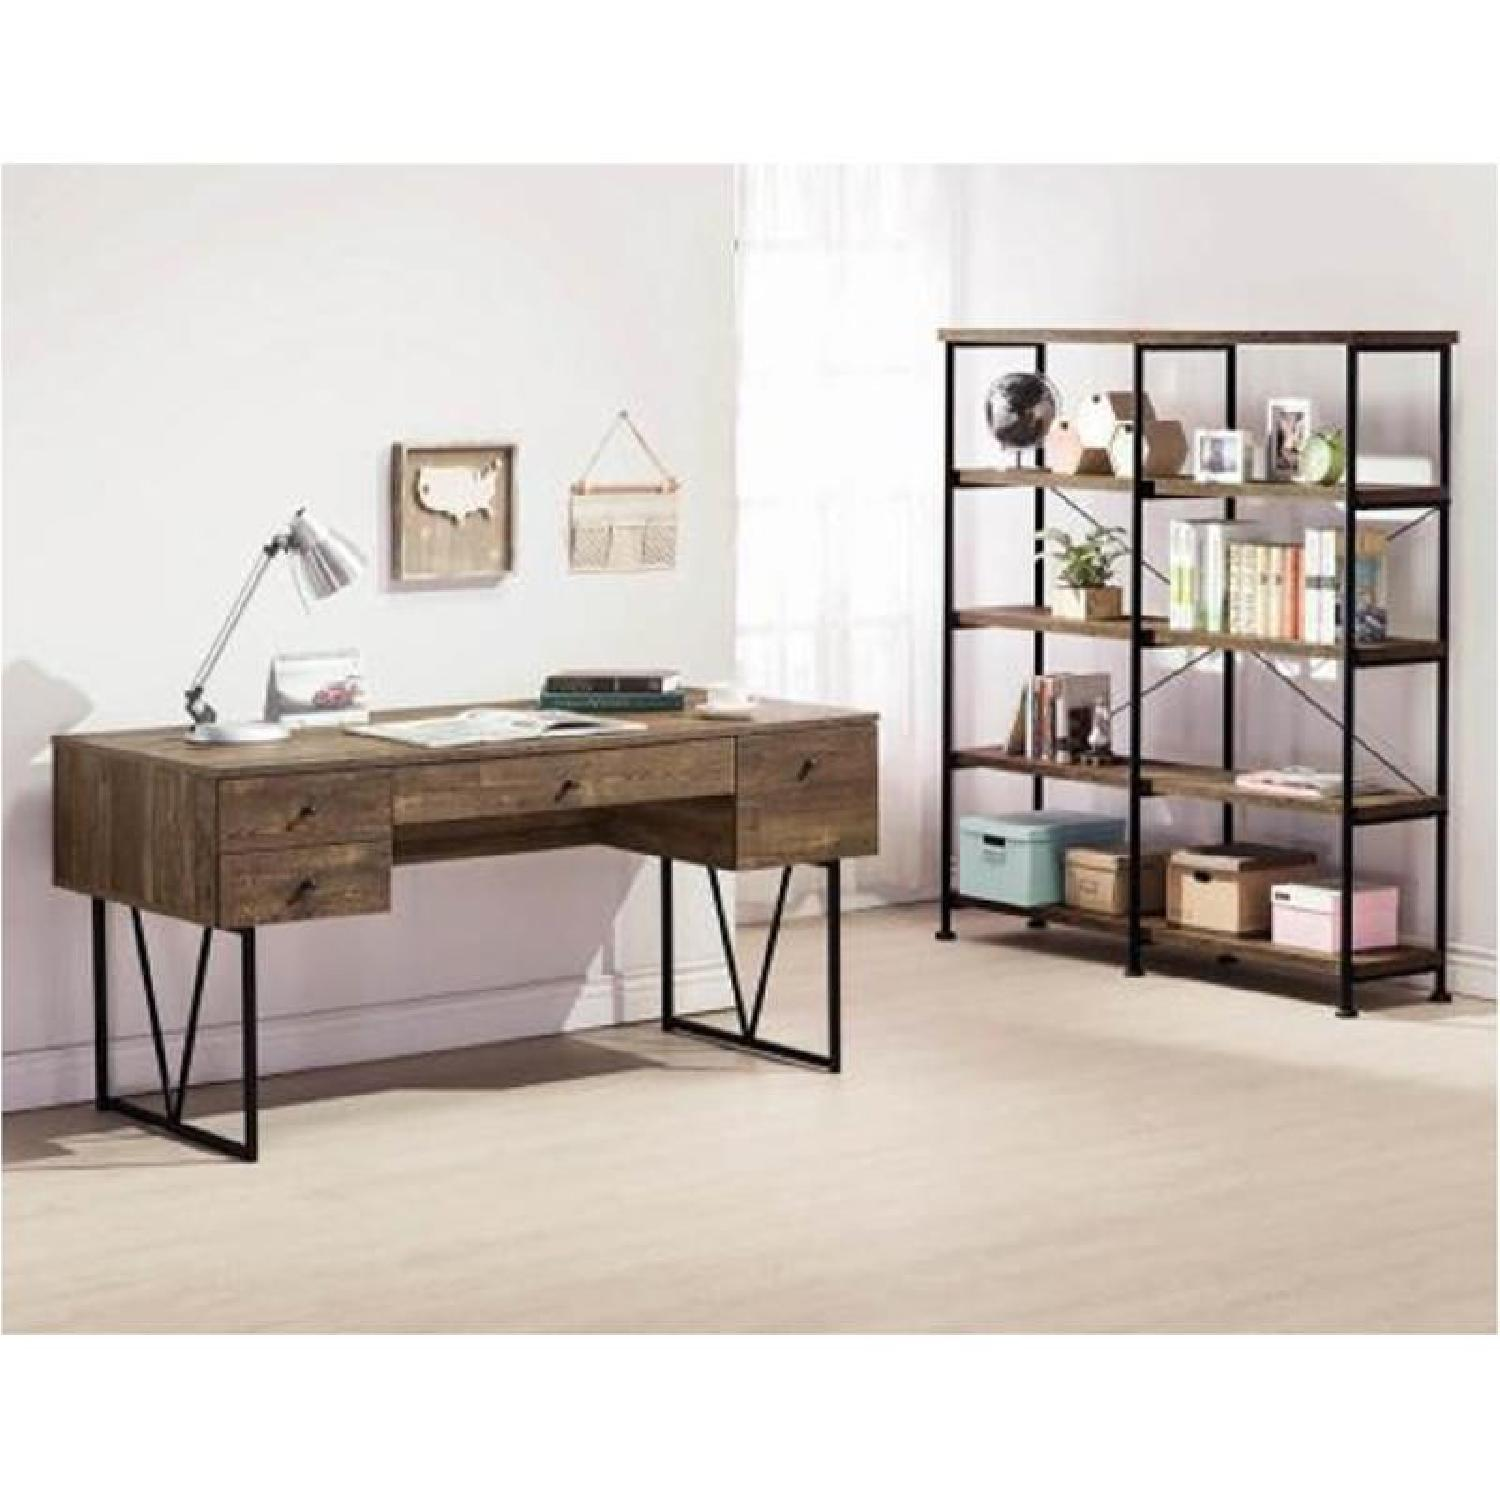 Rustic Oak Desk w/ Black Metal Frame Legs - image-5